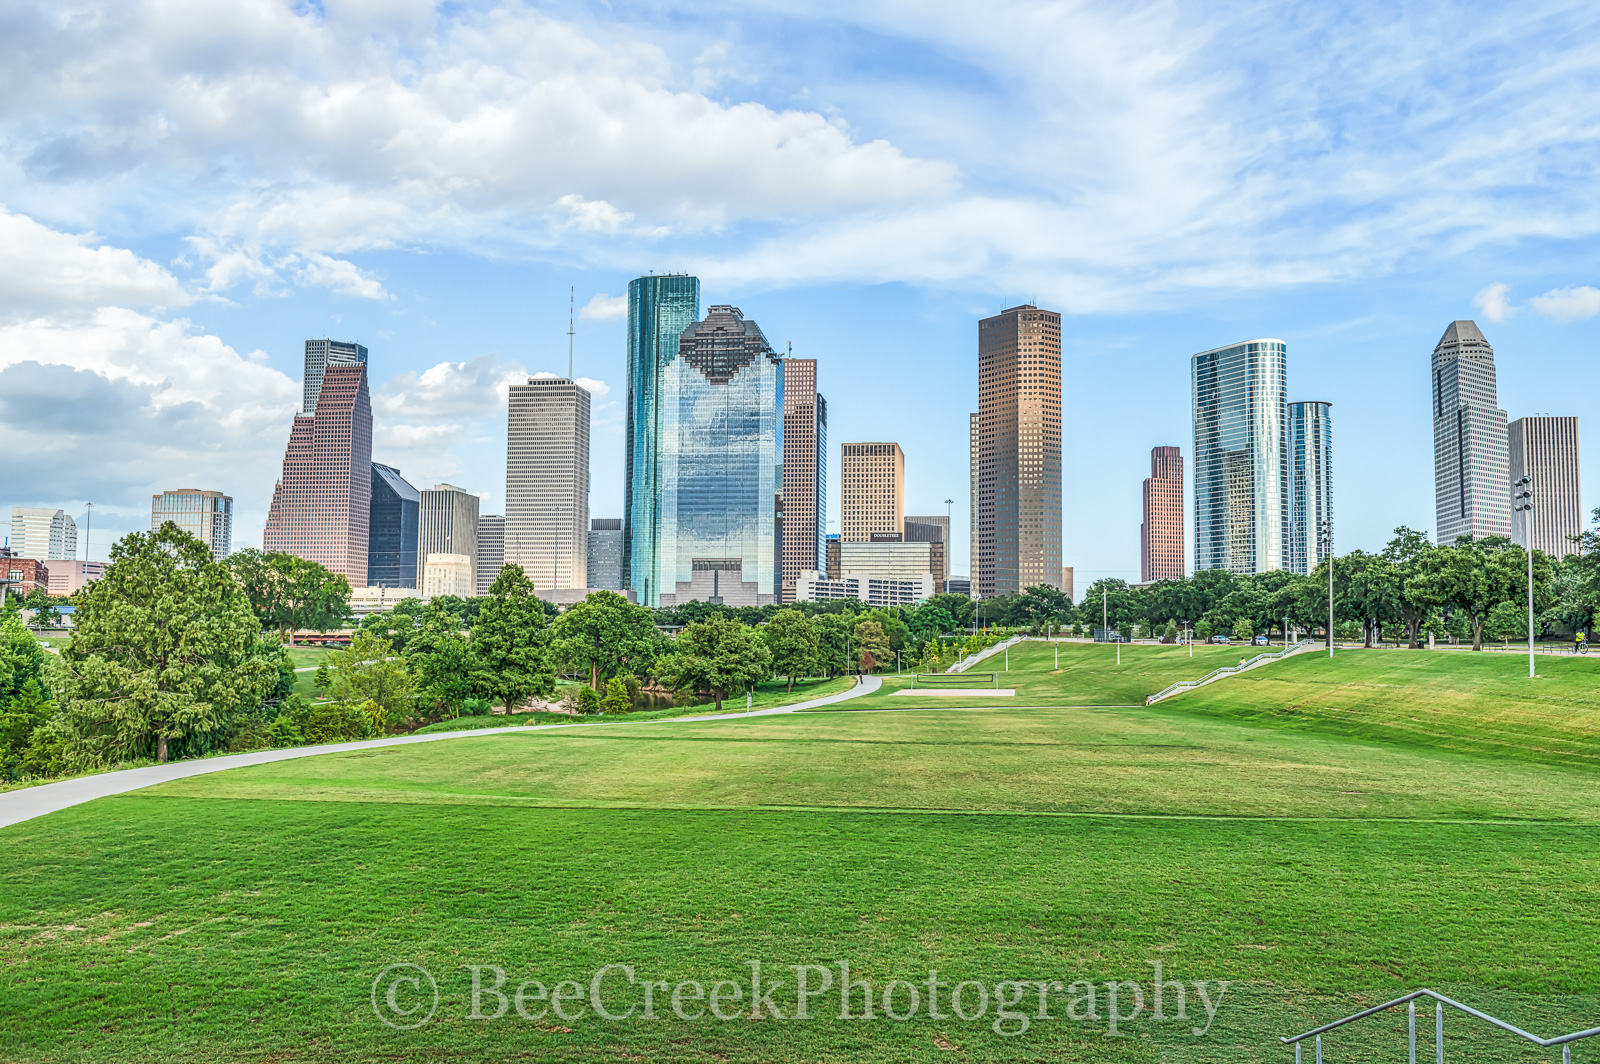 Houston, ball, buffalo bayou, city, cityscape, cityscapes, downtown, high rise, hike and bike, skycrapers, skyline, skylines, sports, trails, volley ball